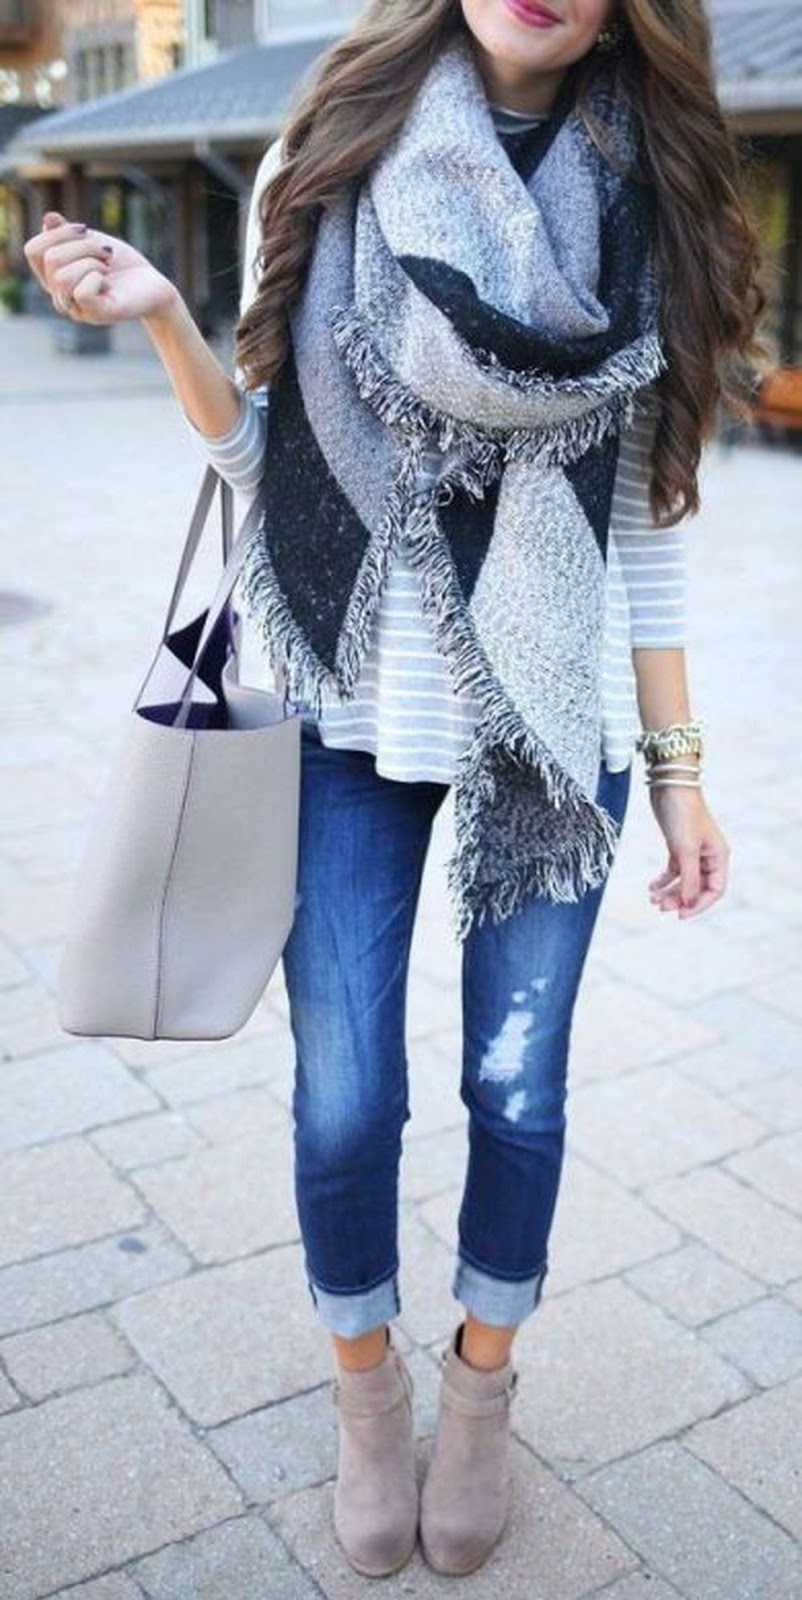 awesome winter outfit / striped top + scarf + bag + skinnies + boots